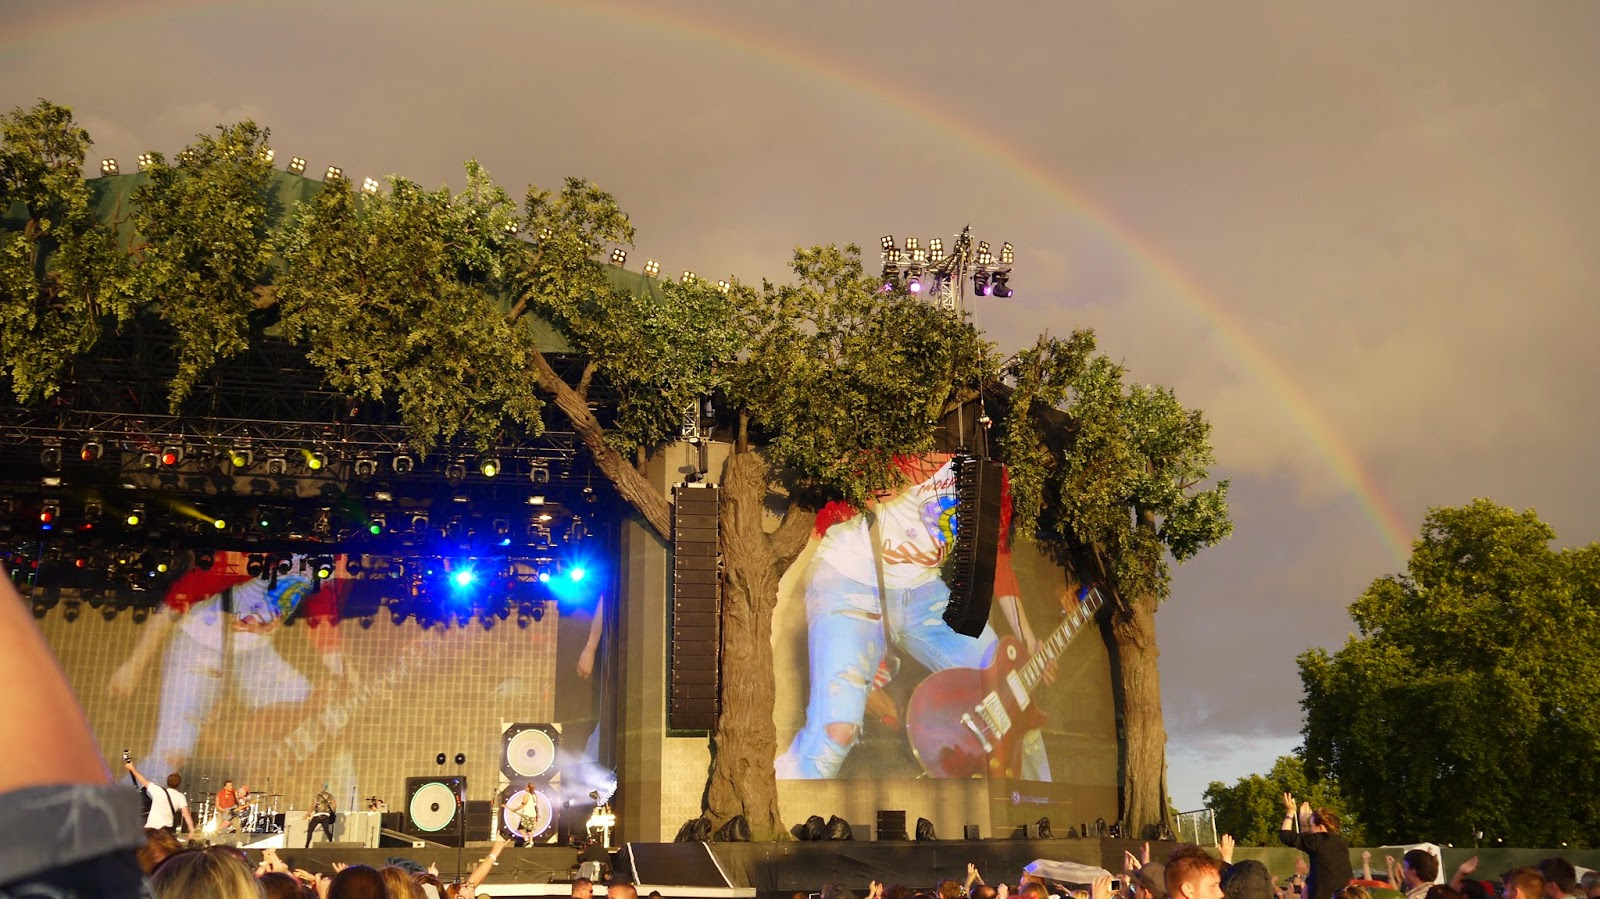 Rainbow over McBusted at British Summer Time Hyde Park